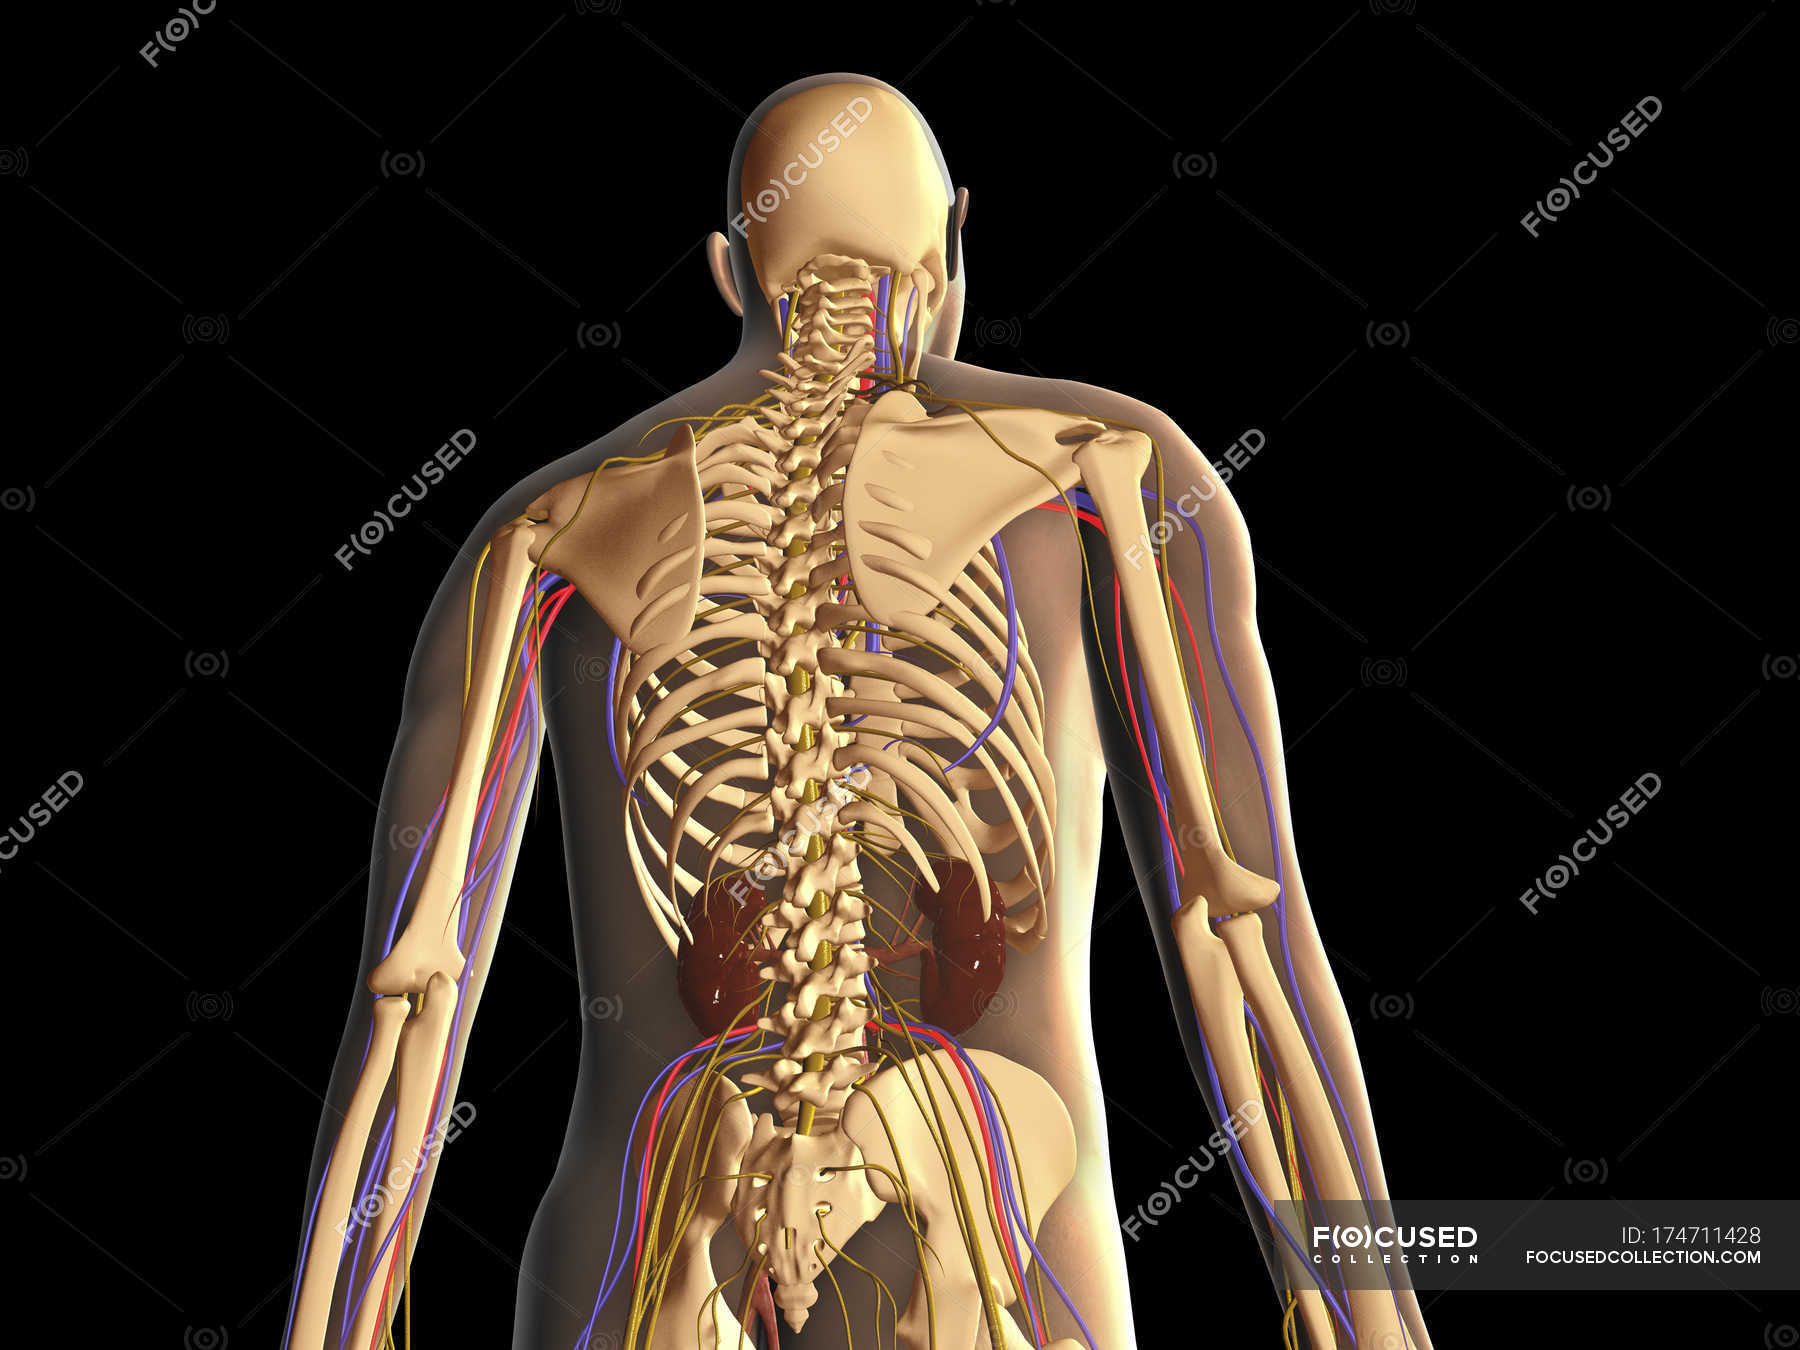 Transparent Rear View Of Human Body Showing Skeleton Kidneys And